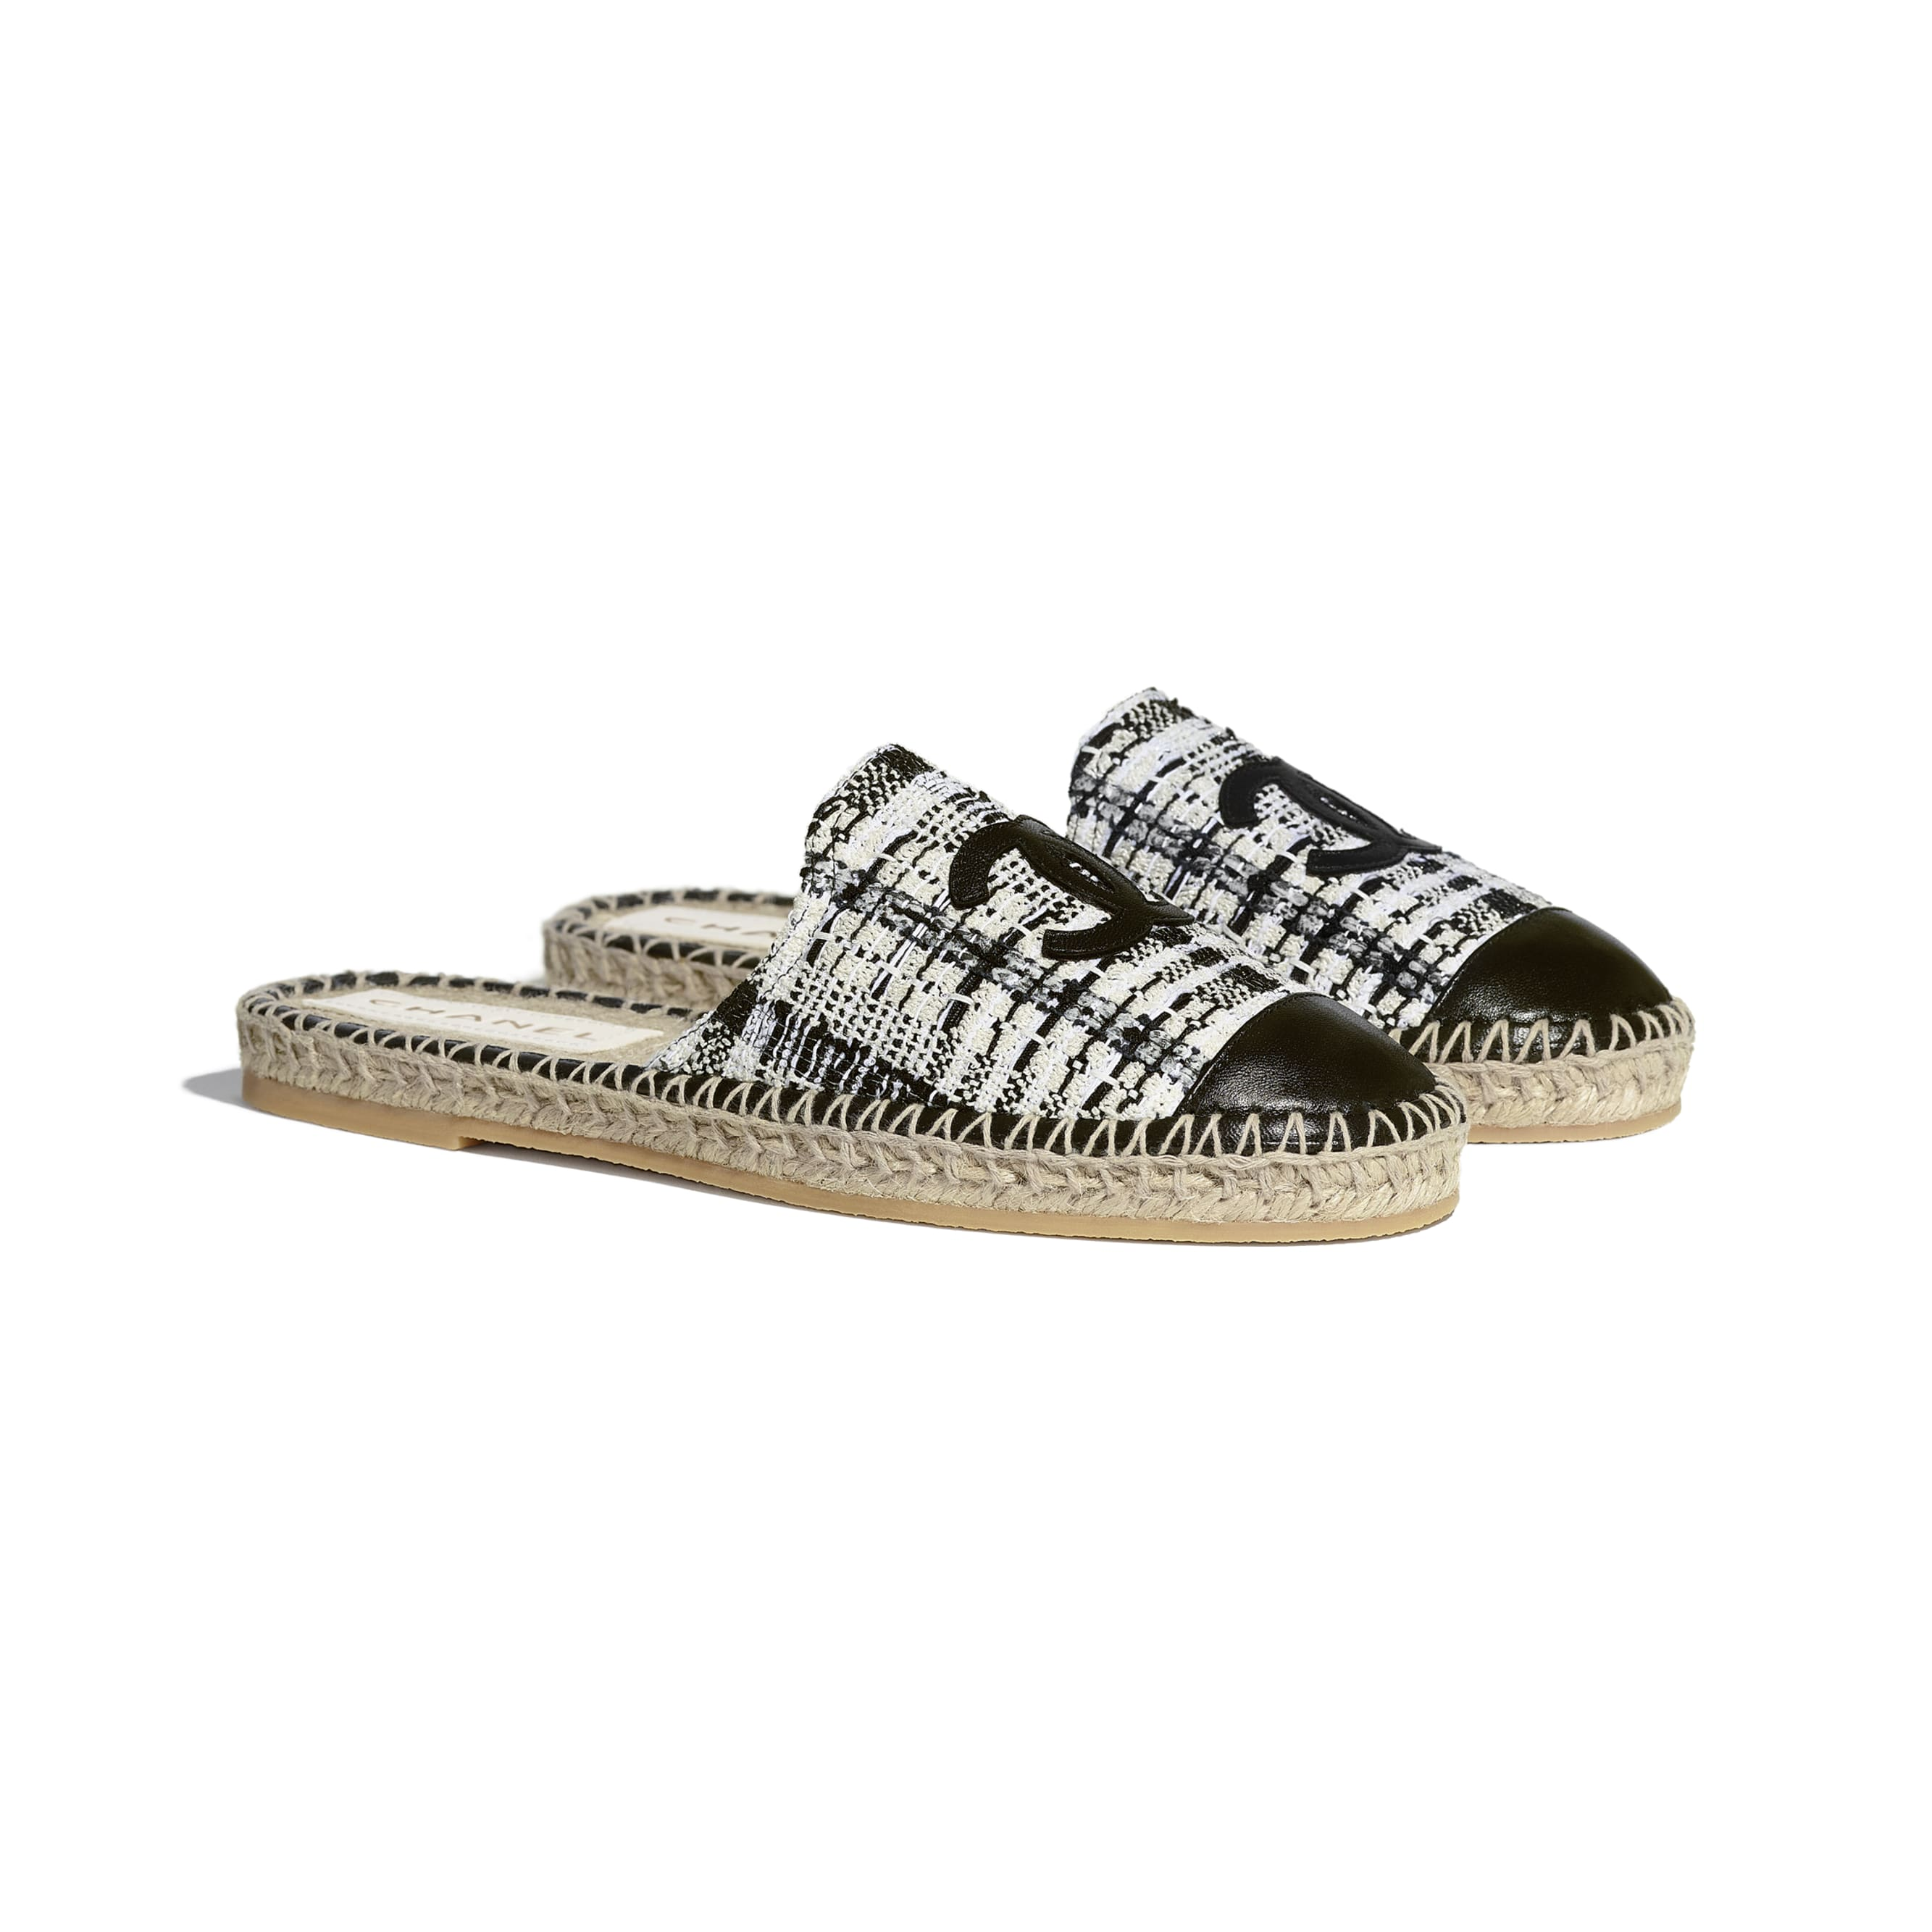 Espadrilles - Ivory, Grey & Black - Tweed & Lambskin - CHANEL - Alternative view - see standard sized version